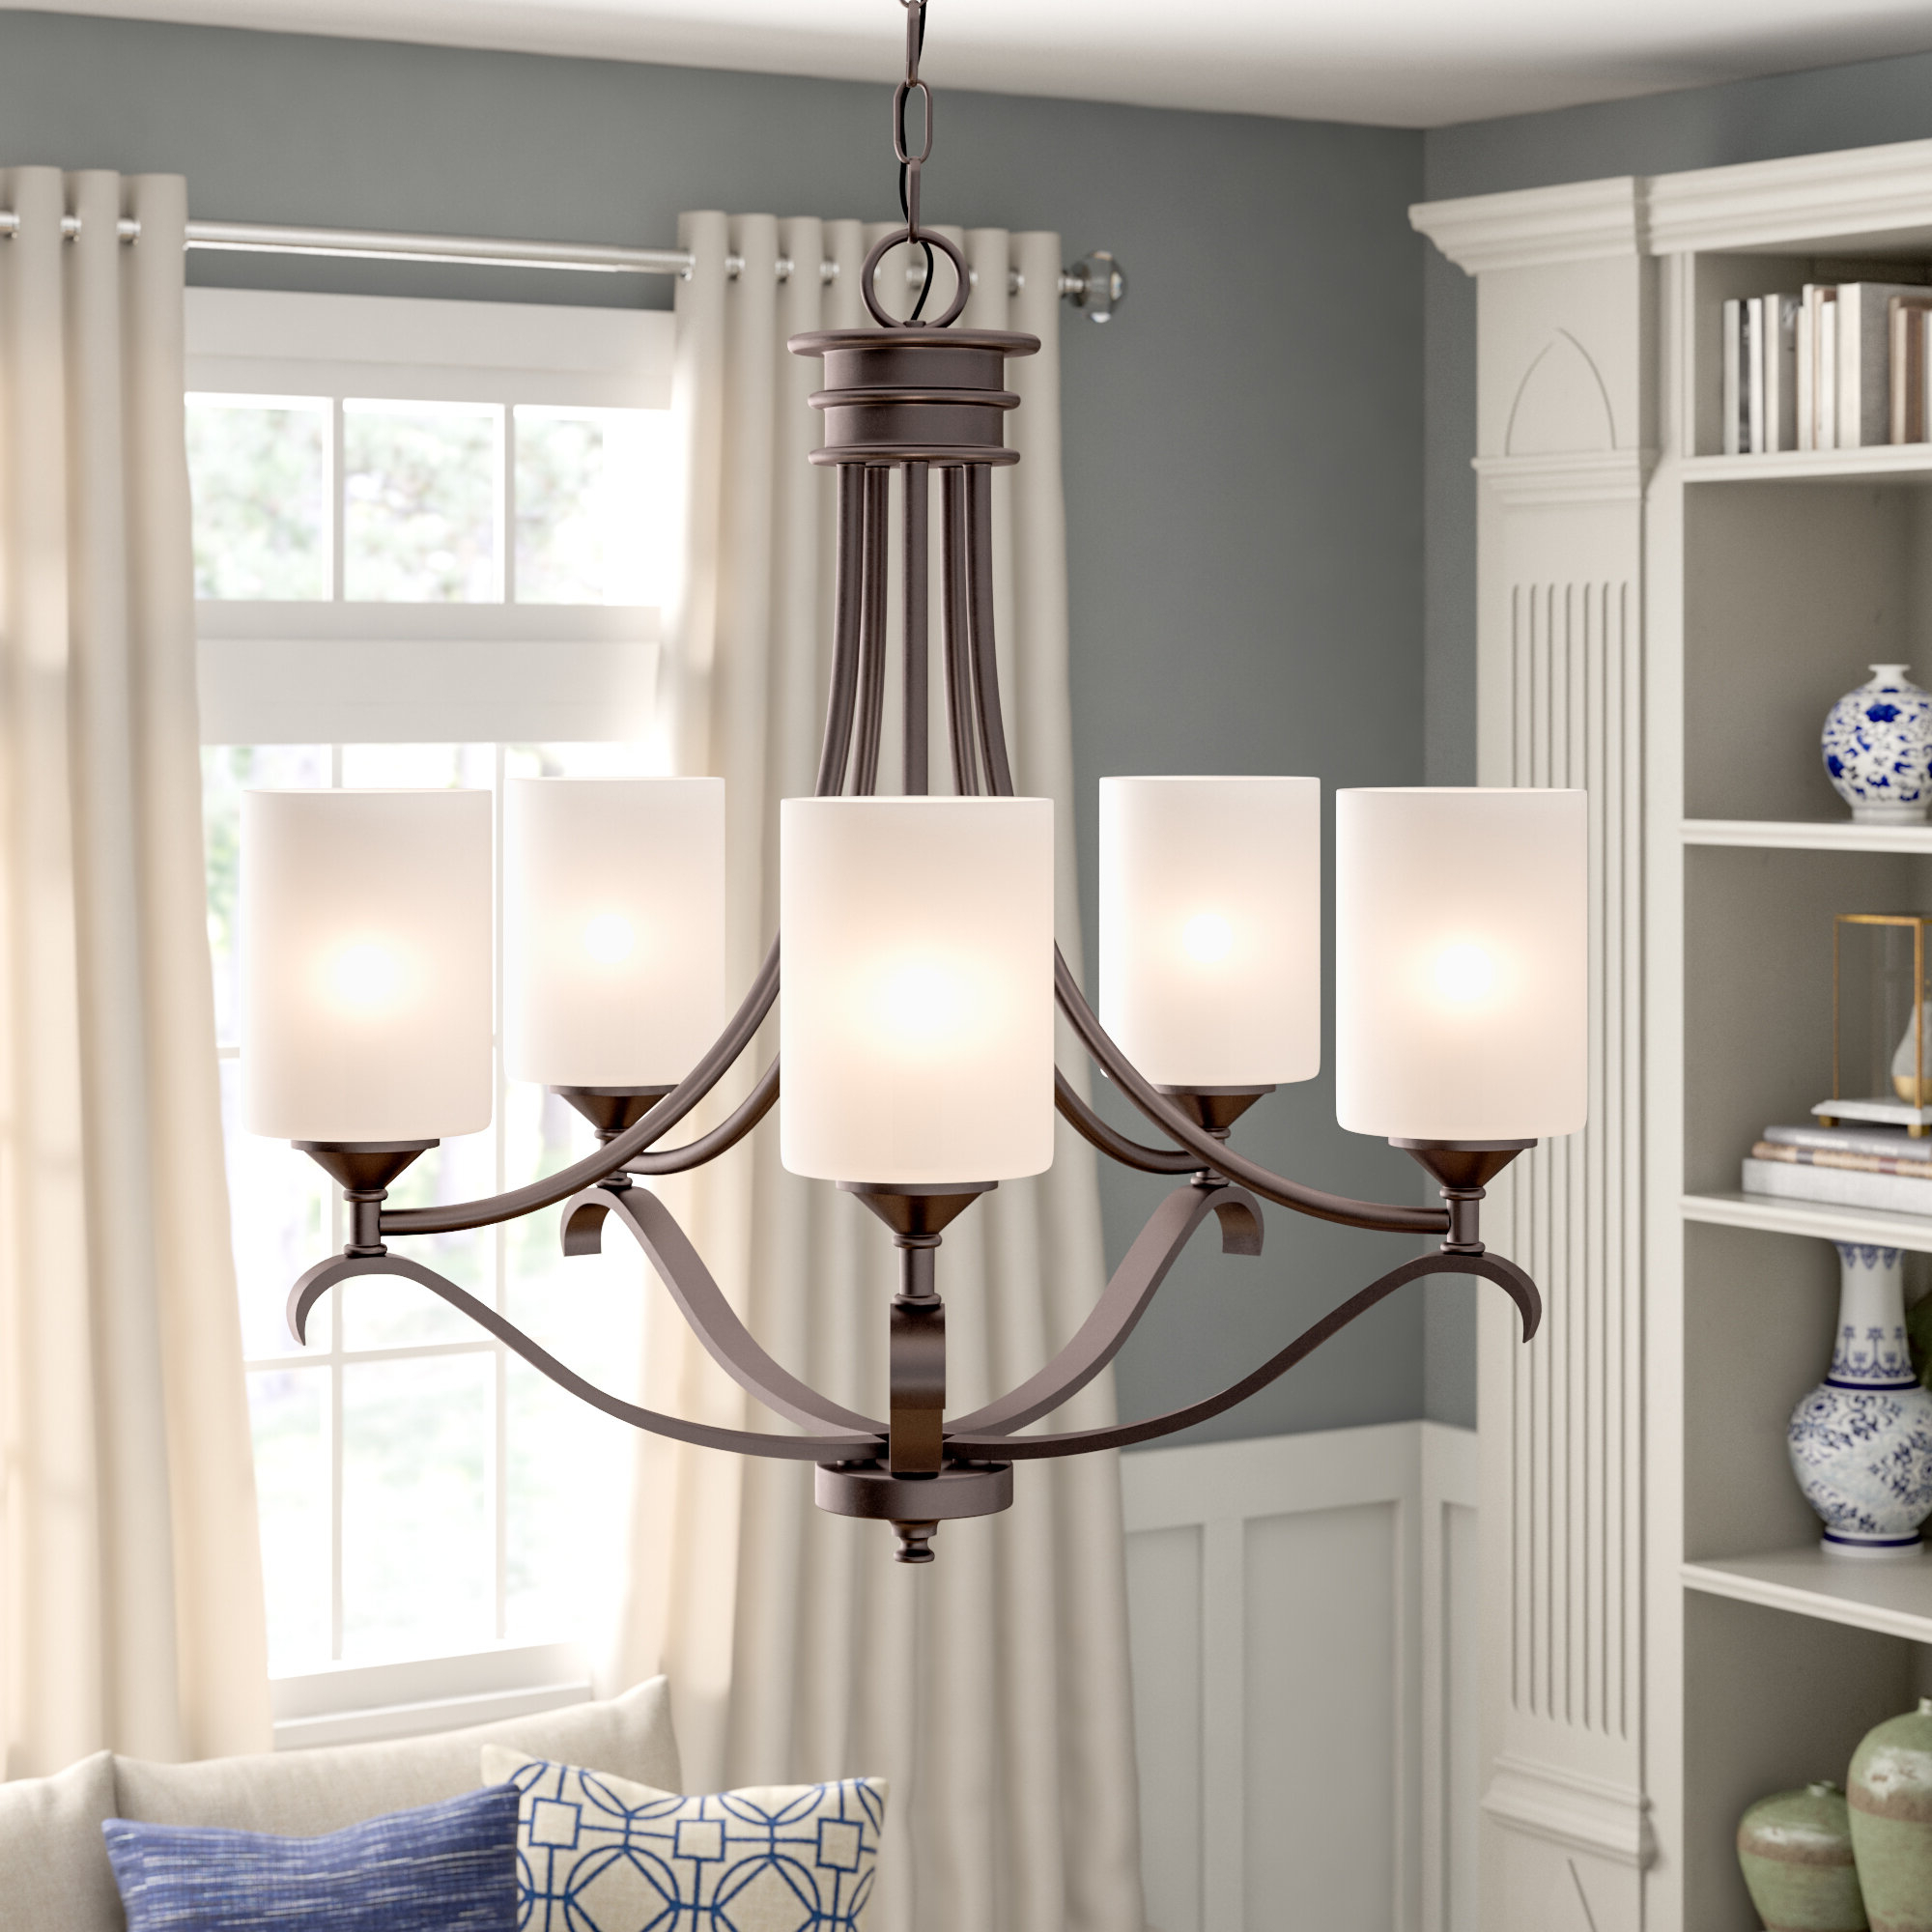 Newest Newent 5 Light Shaded Chandeliers Intended For Suki 5 Light Shaded Chandelier (View 13 of 20)